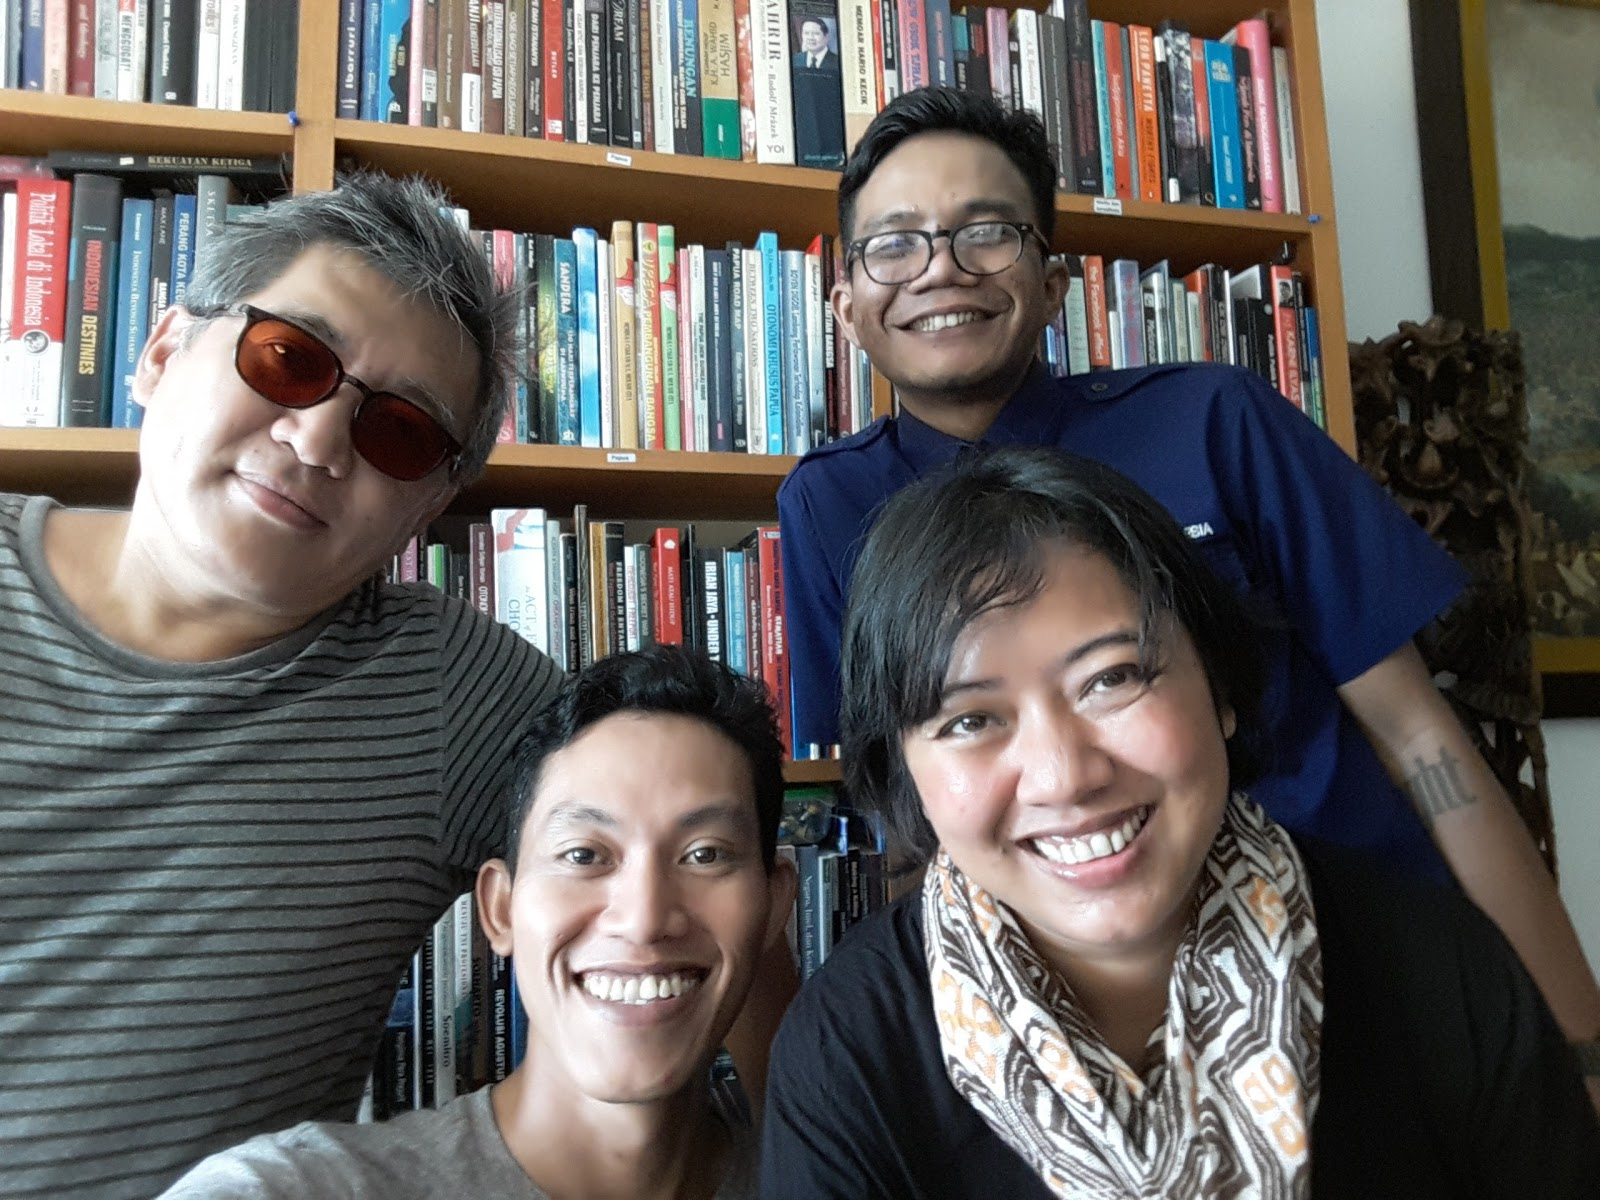 Fahri Salam the editor of Pindai as well as Benny Satryo of Media Indonesia daily and Endang Prihatin of Metro TV visited me at home